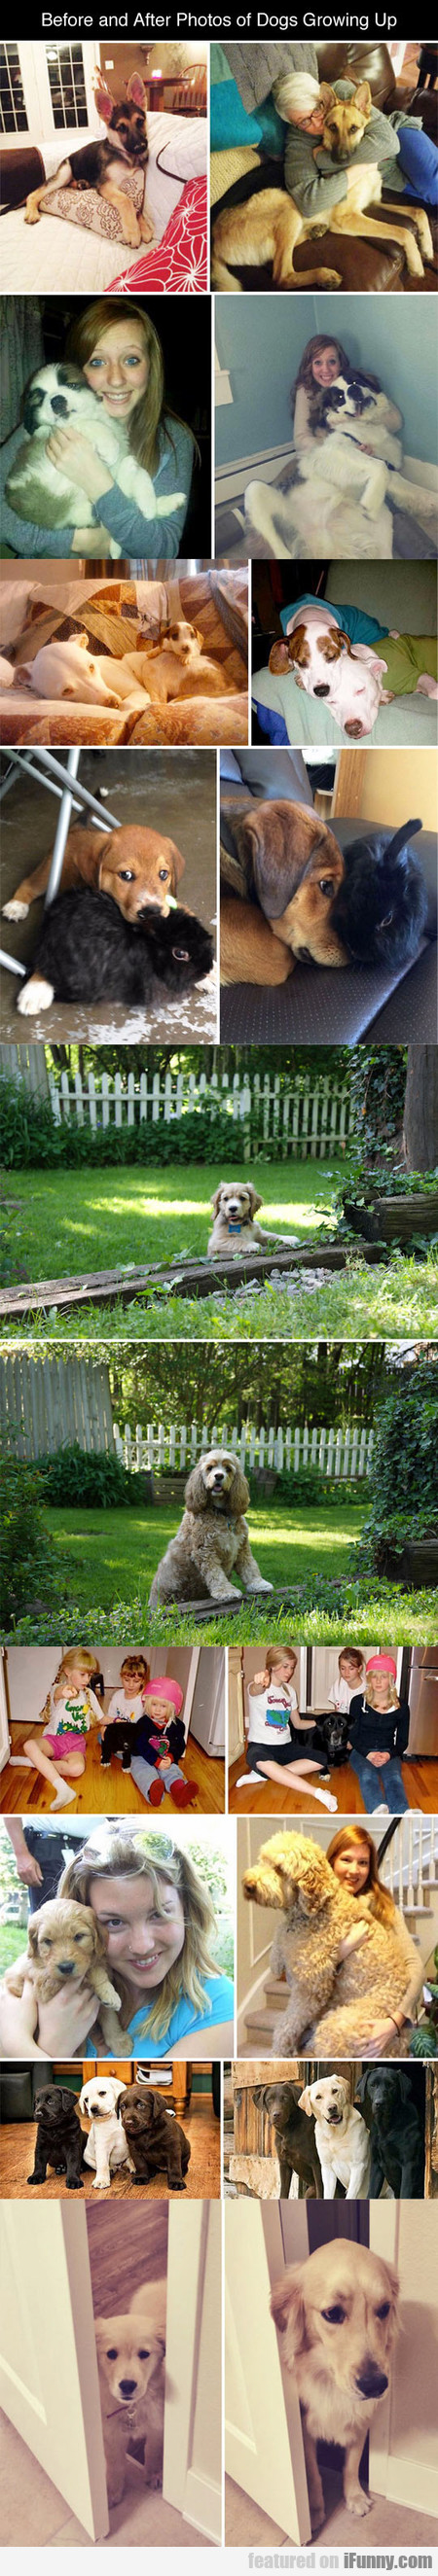 before and after photos of dogs